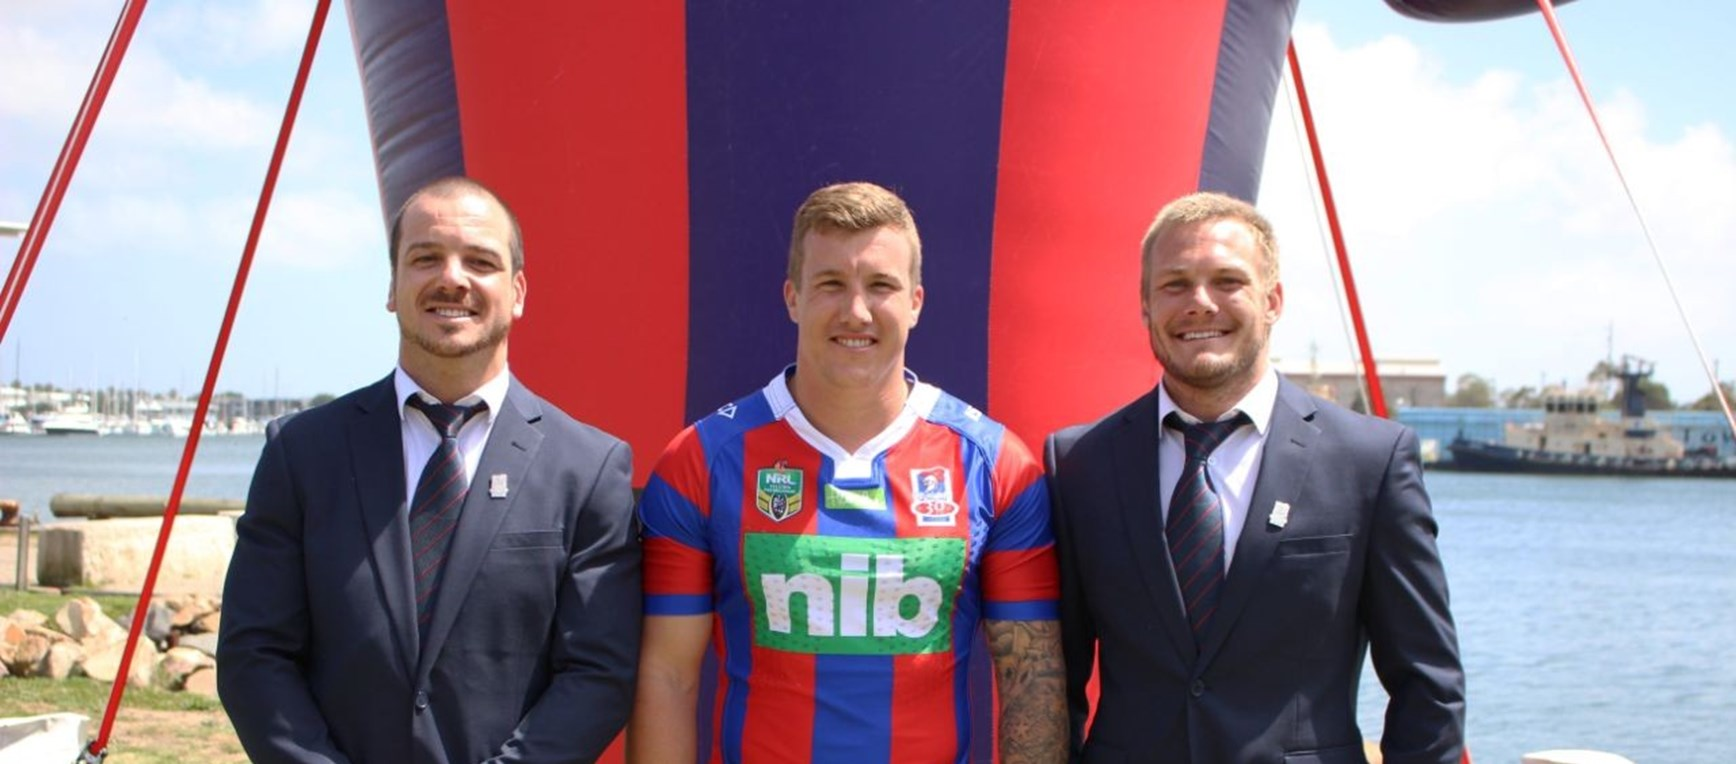 Gallery: Knights celebrate nib partnership